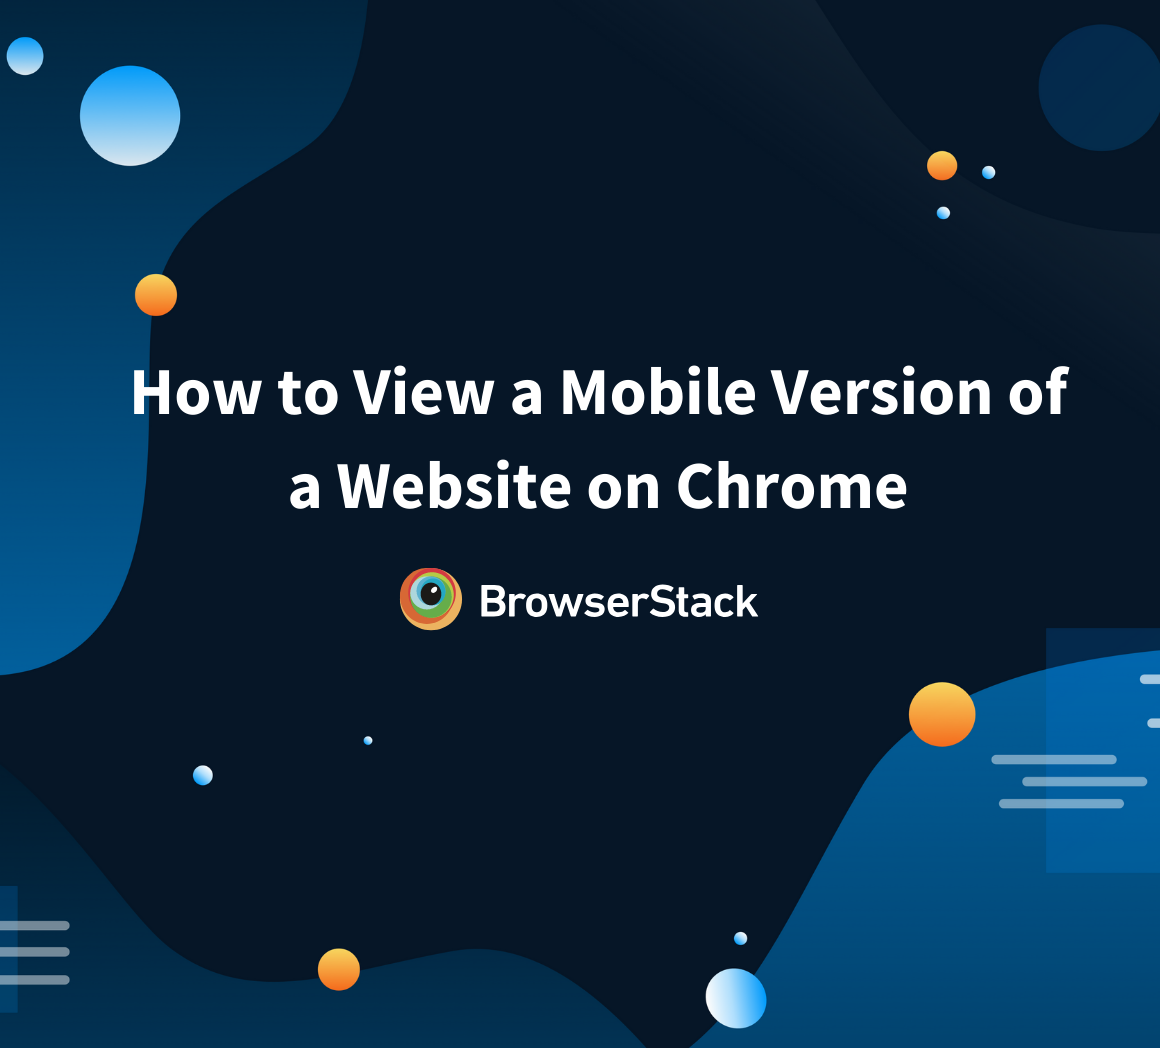 How to View a Mobile Version of a Website on Chrome